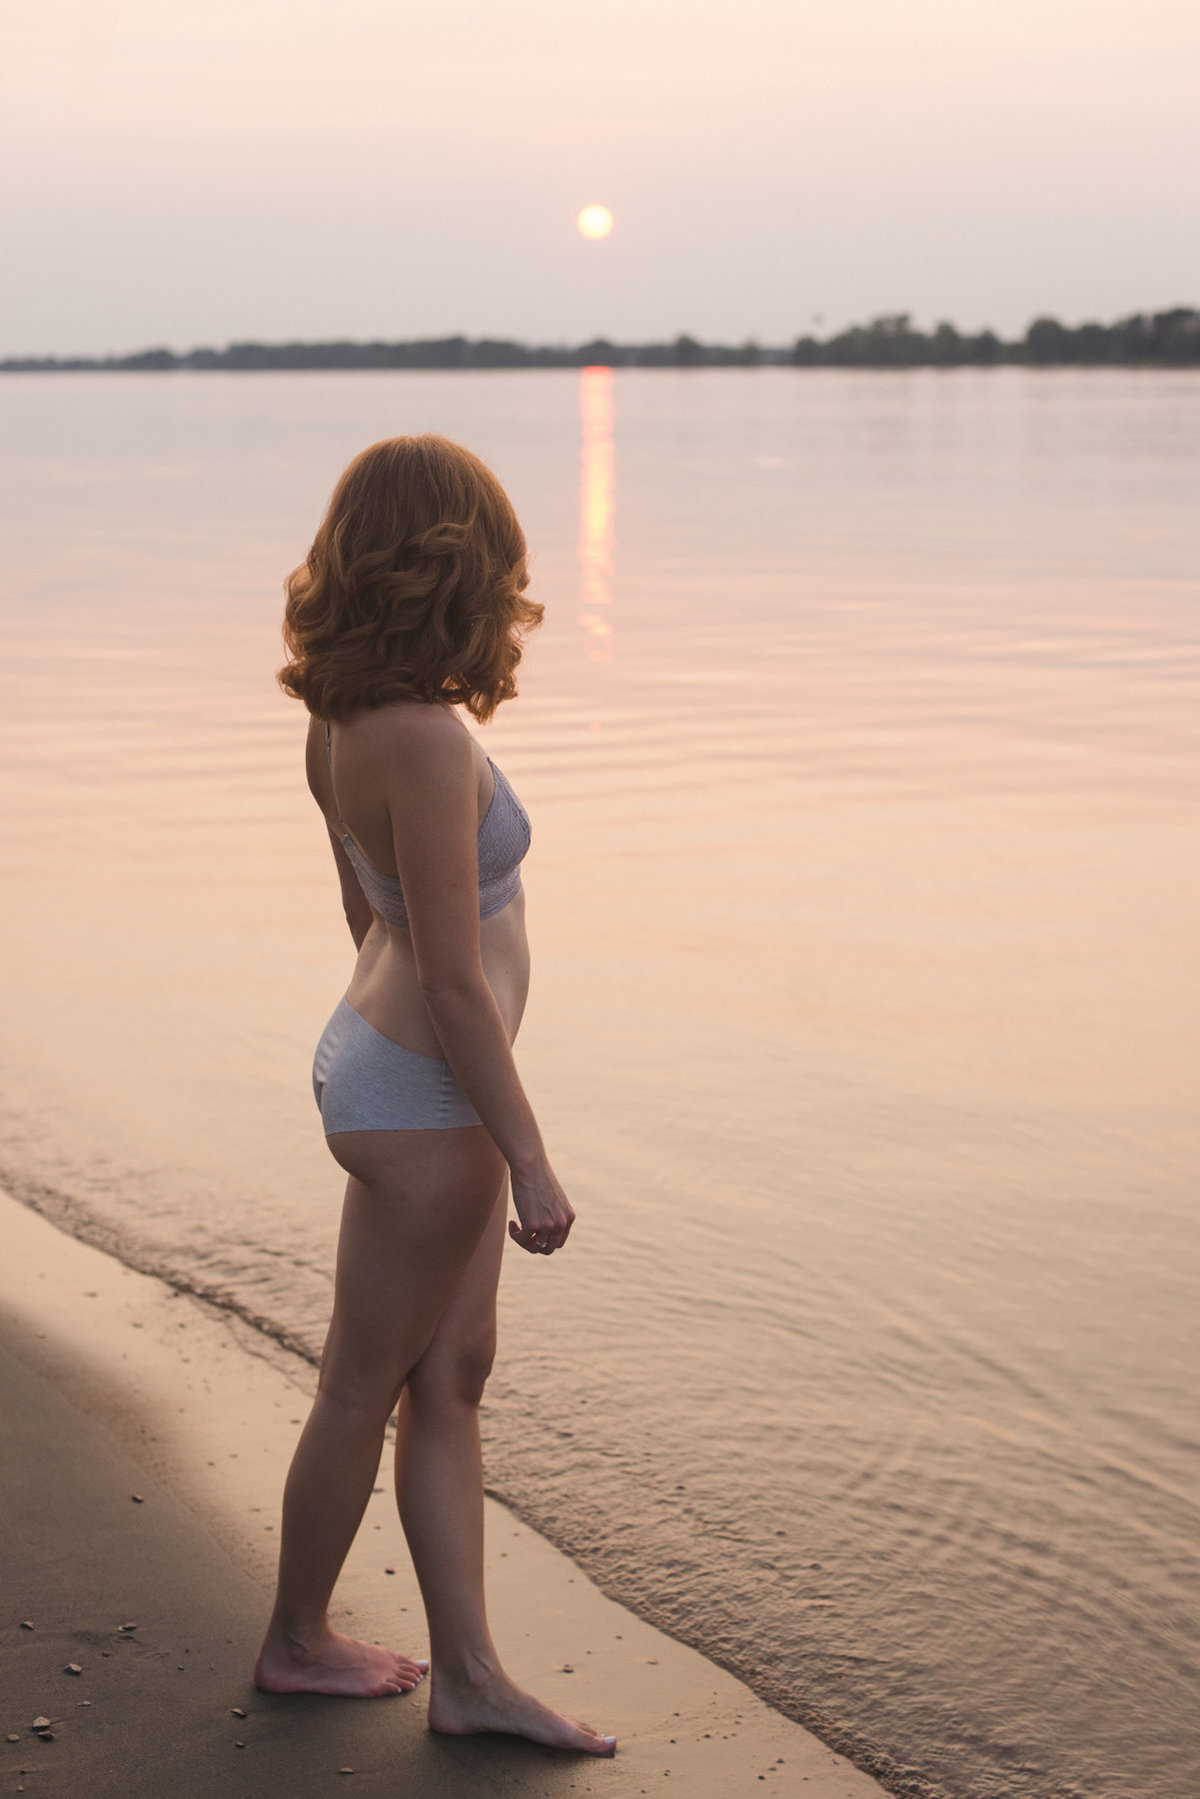 red headed girl standing by the water's edge in her underwear looking out at the sunset